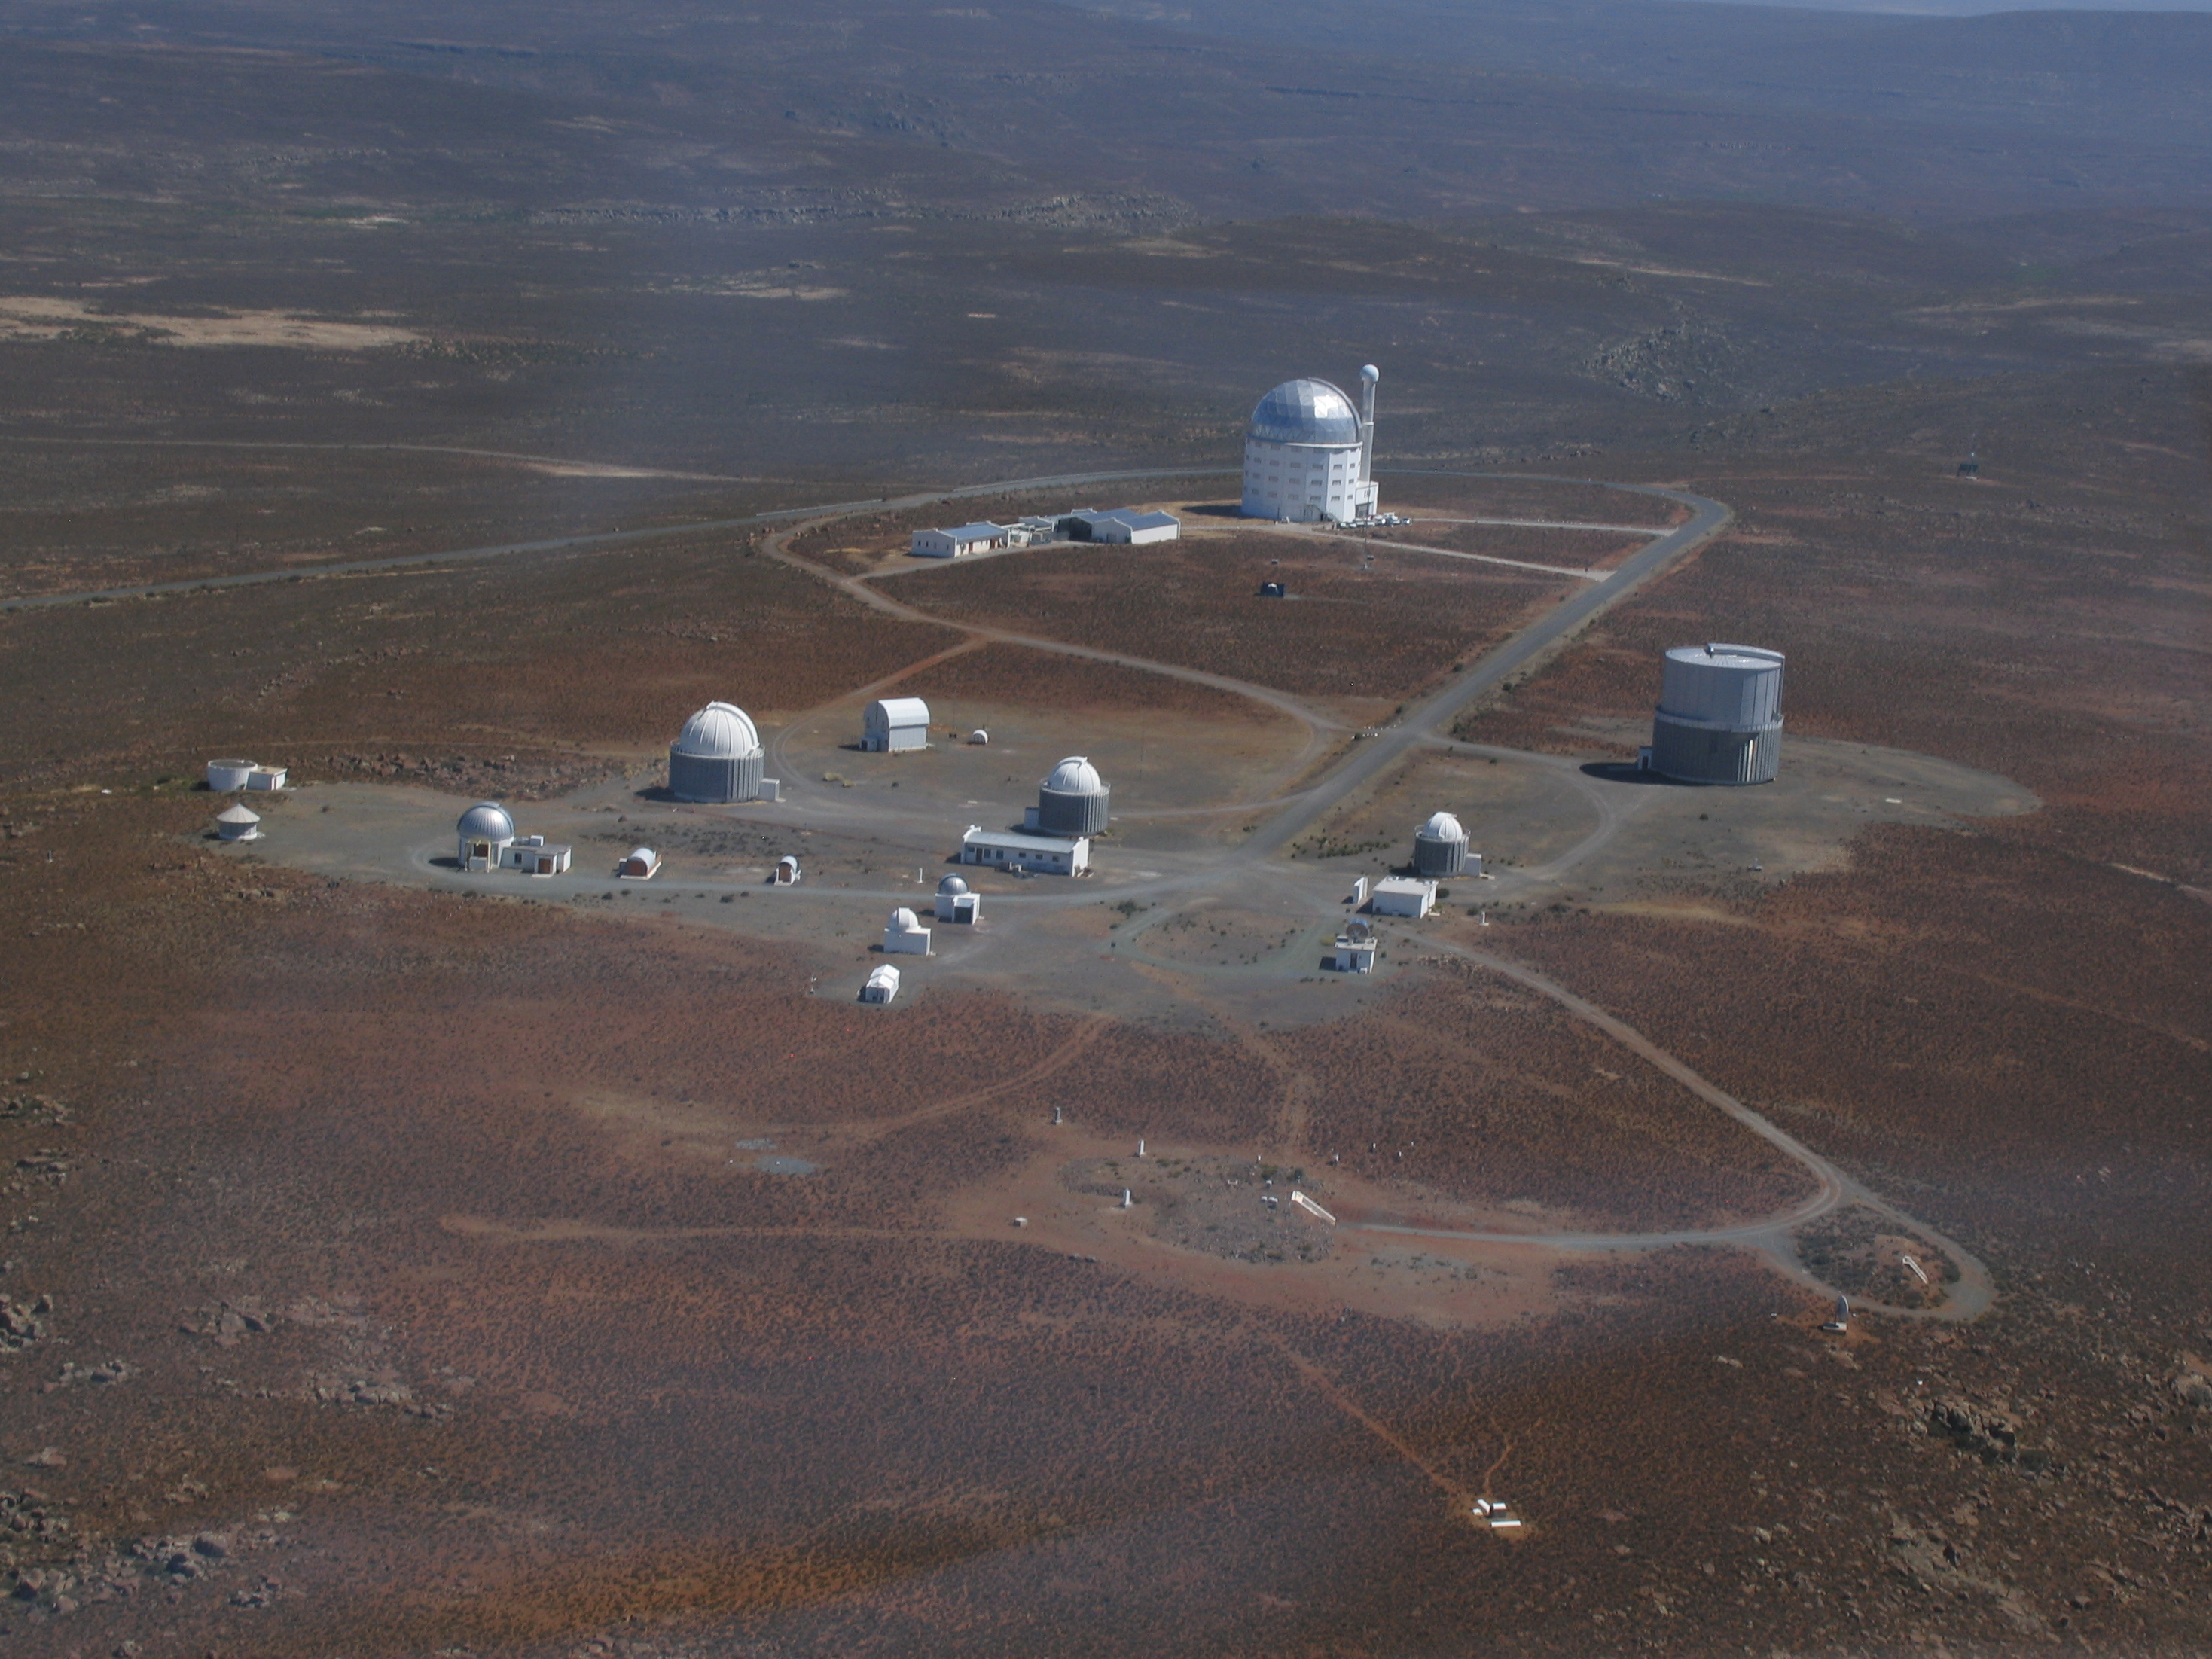 Sutherland South Africa  City pictures : South African Astronomical Observatory sutherland aerial view